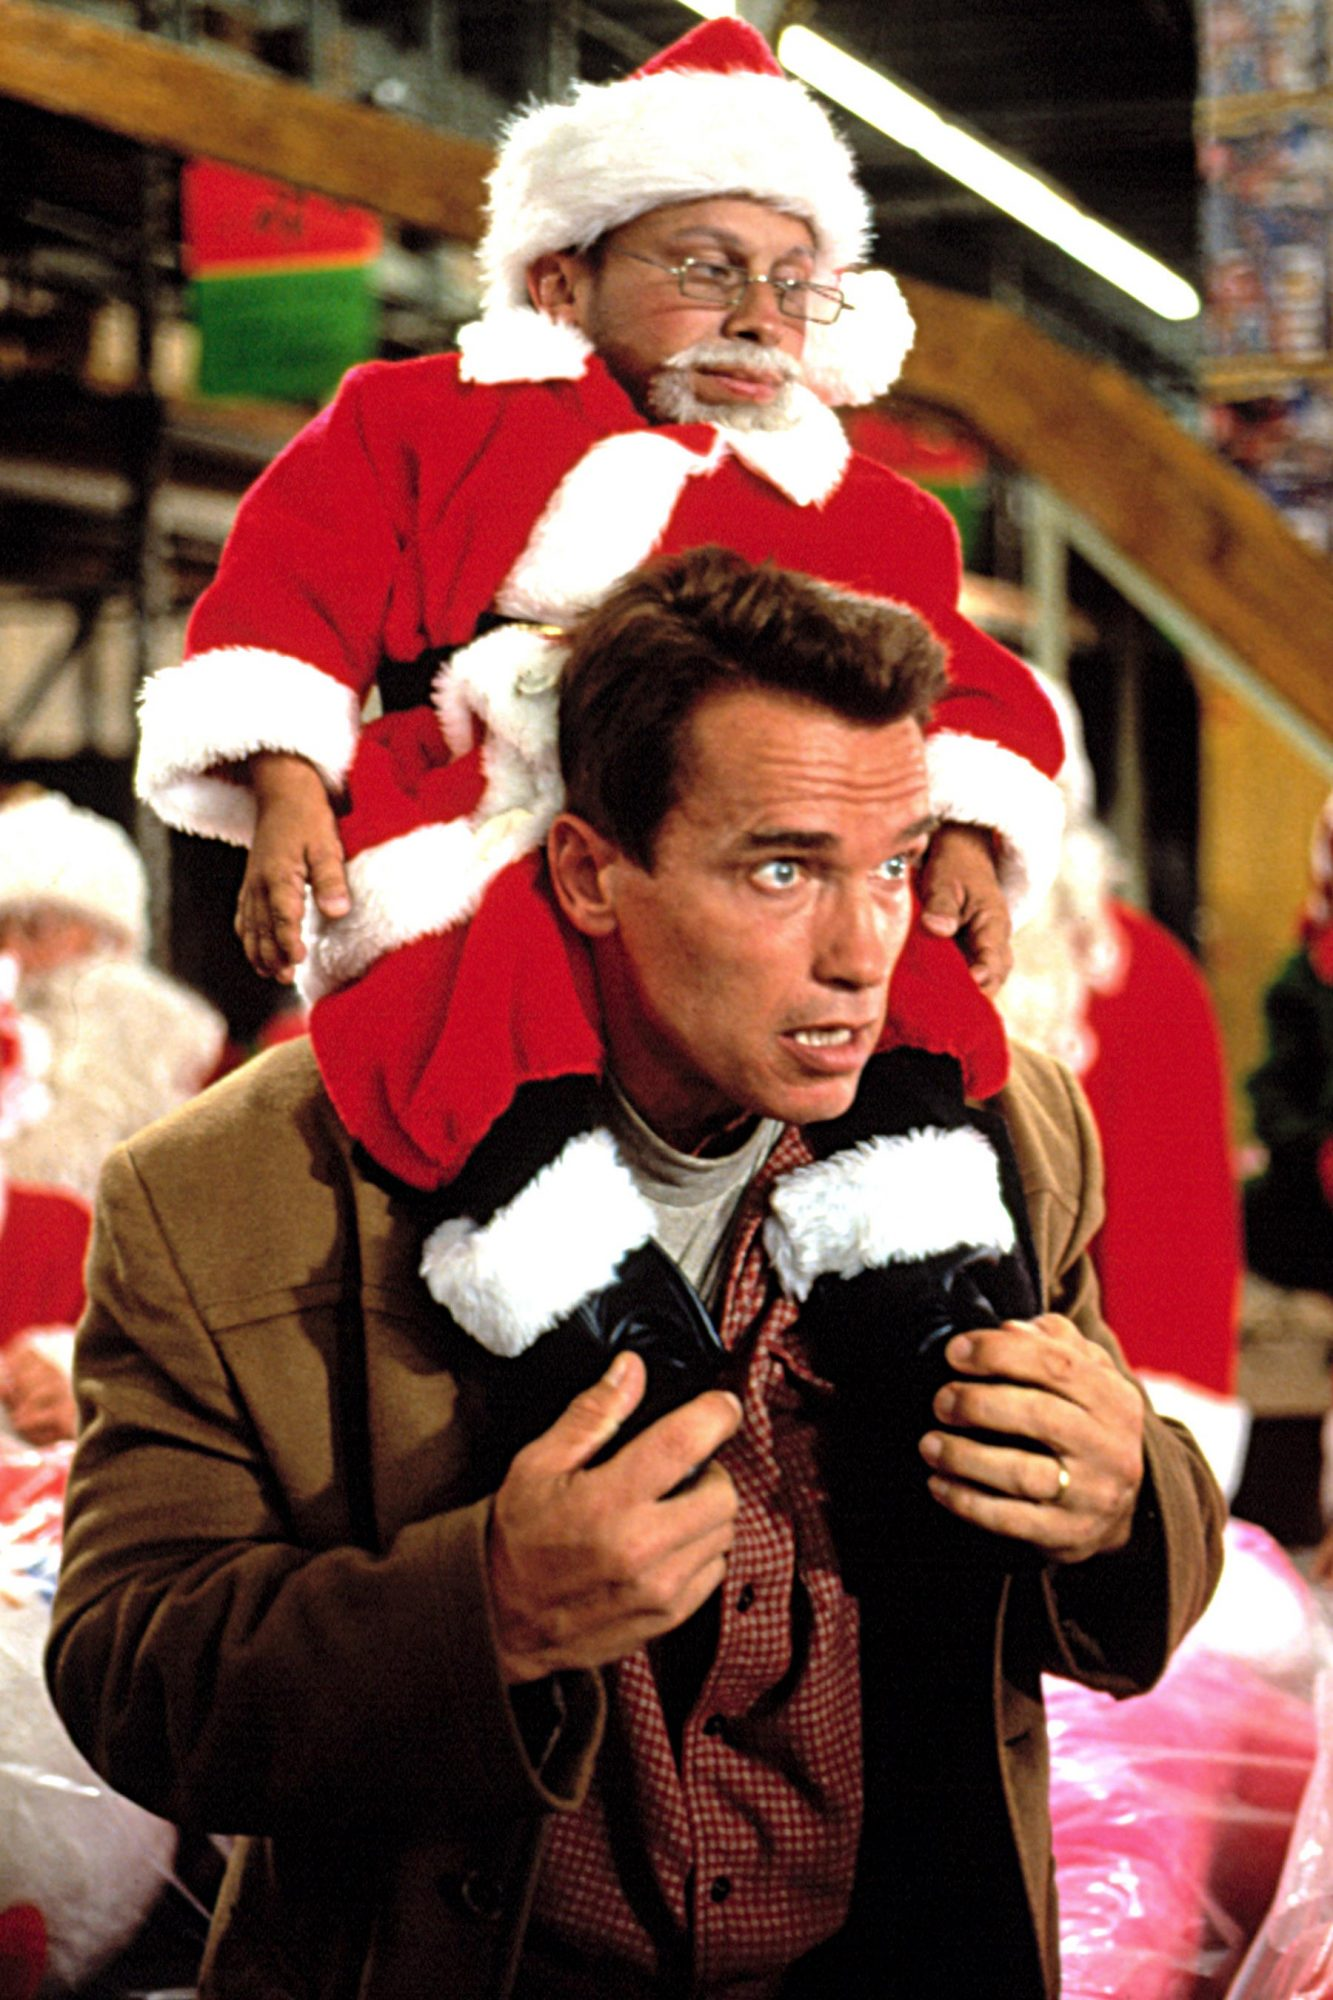 JINGLE ALL THE WAY, Verne Troyer, Arnold Schwarzenegger, 1996, TM and Copyright (c)20th Century Fox